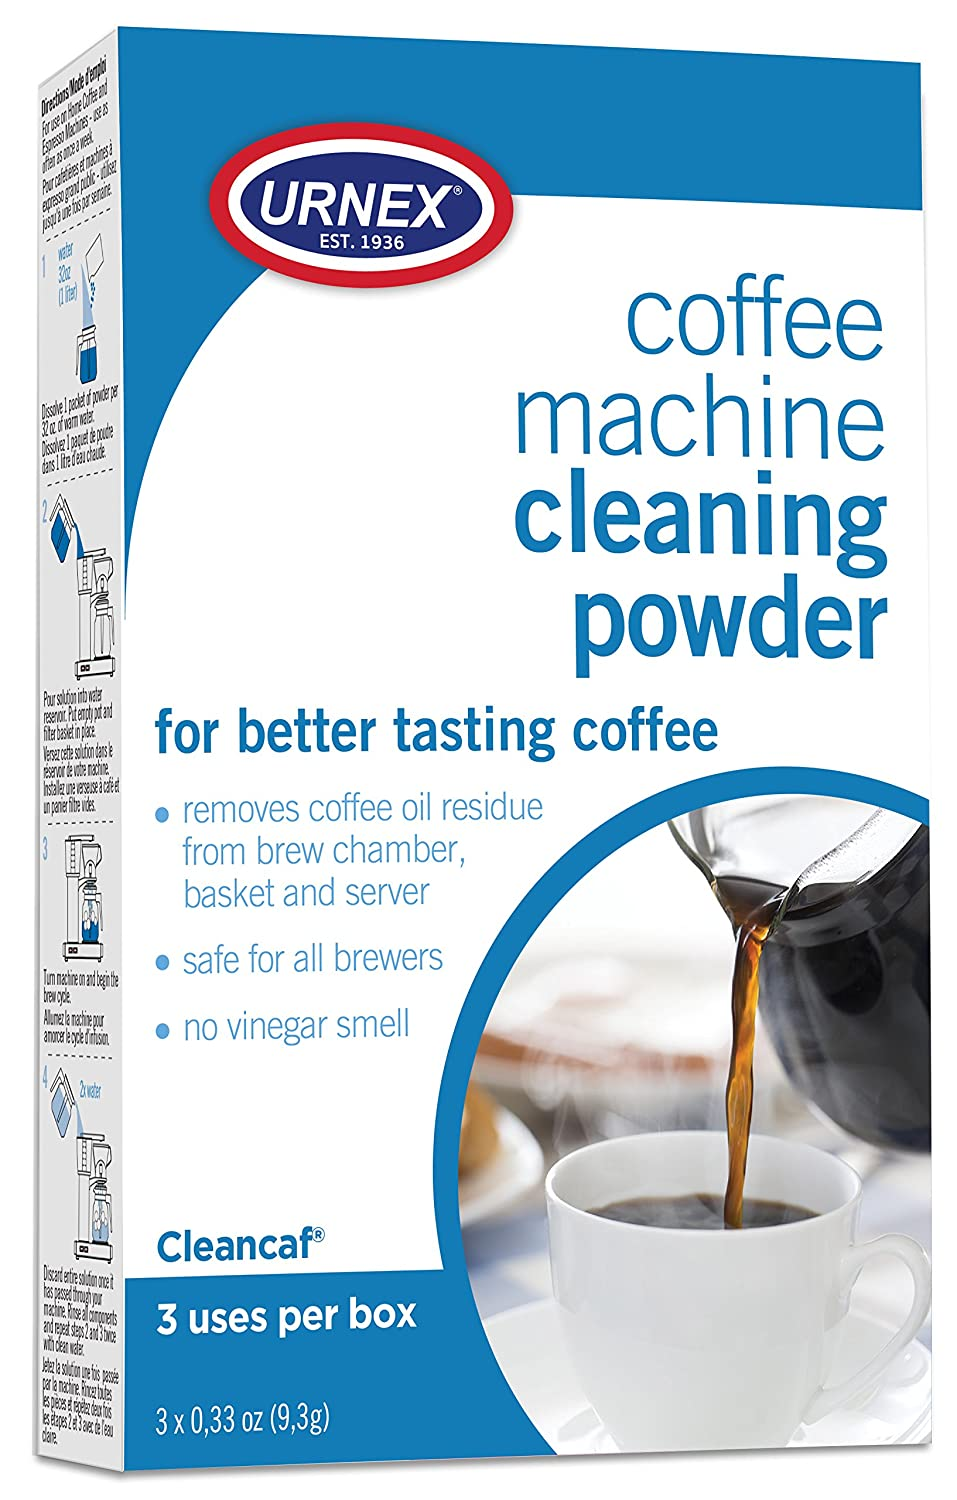 Urnex Coffee Maker and Espresso Machine Cleaner Cleancaf Powder - 3 Packets - Safe On Keurig Delonghi Nespresso Ninja Hamilton Beach Mr Coffee Braun and More - 0021PF